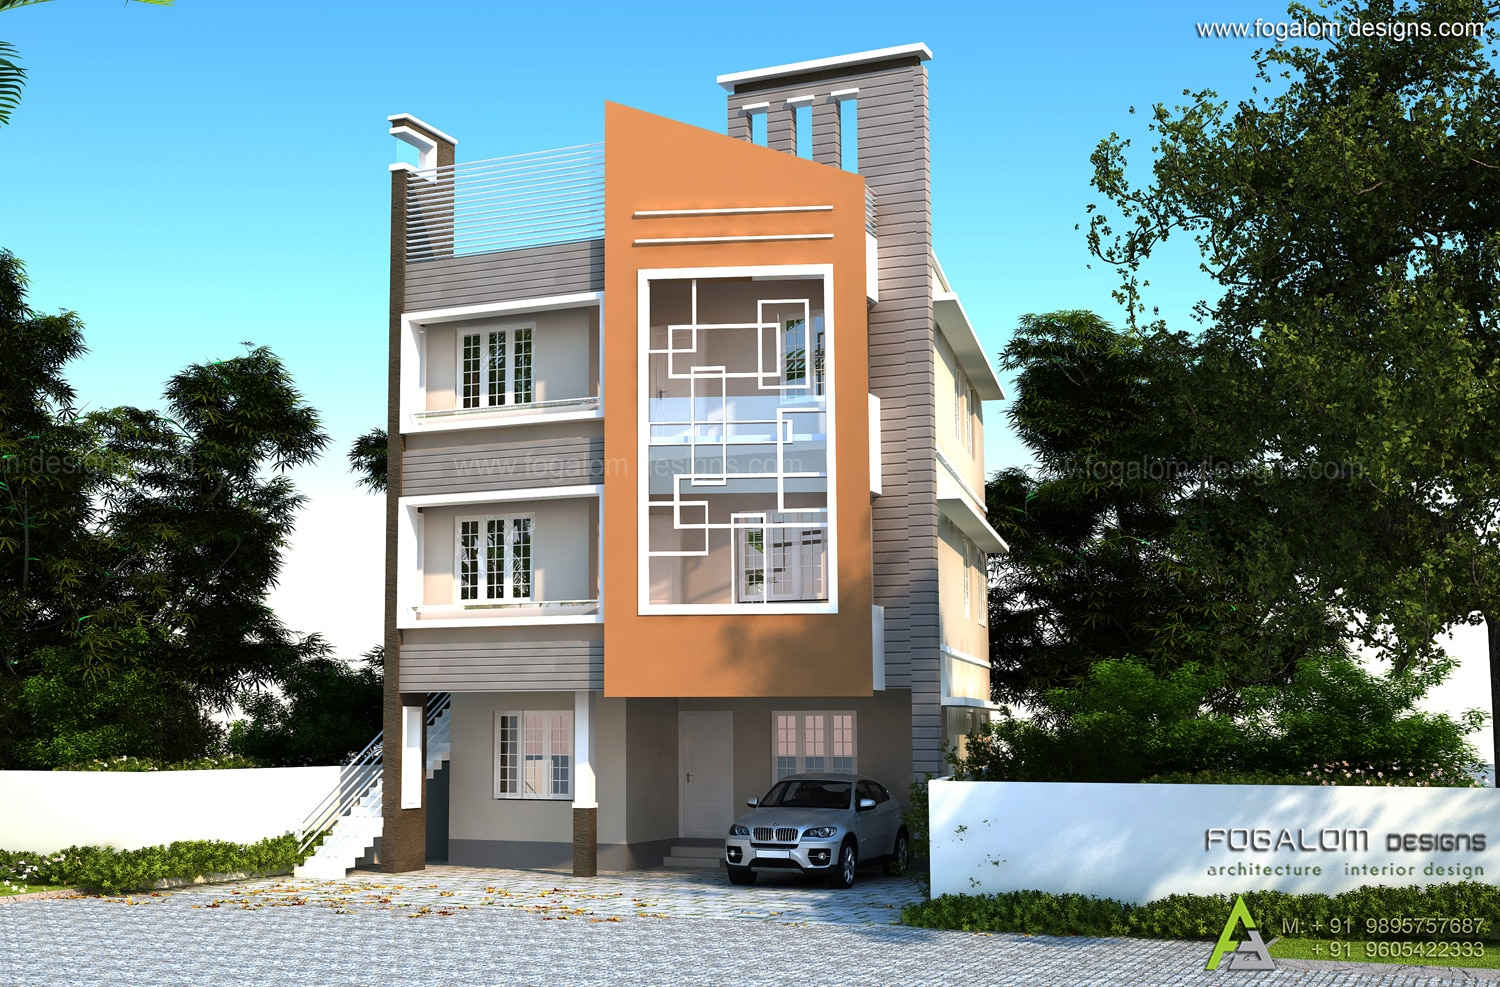 Apartment Interior Design Kerala home design- 3 floor apartment -4500 sft house designers kochi